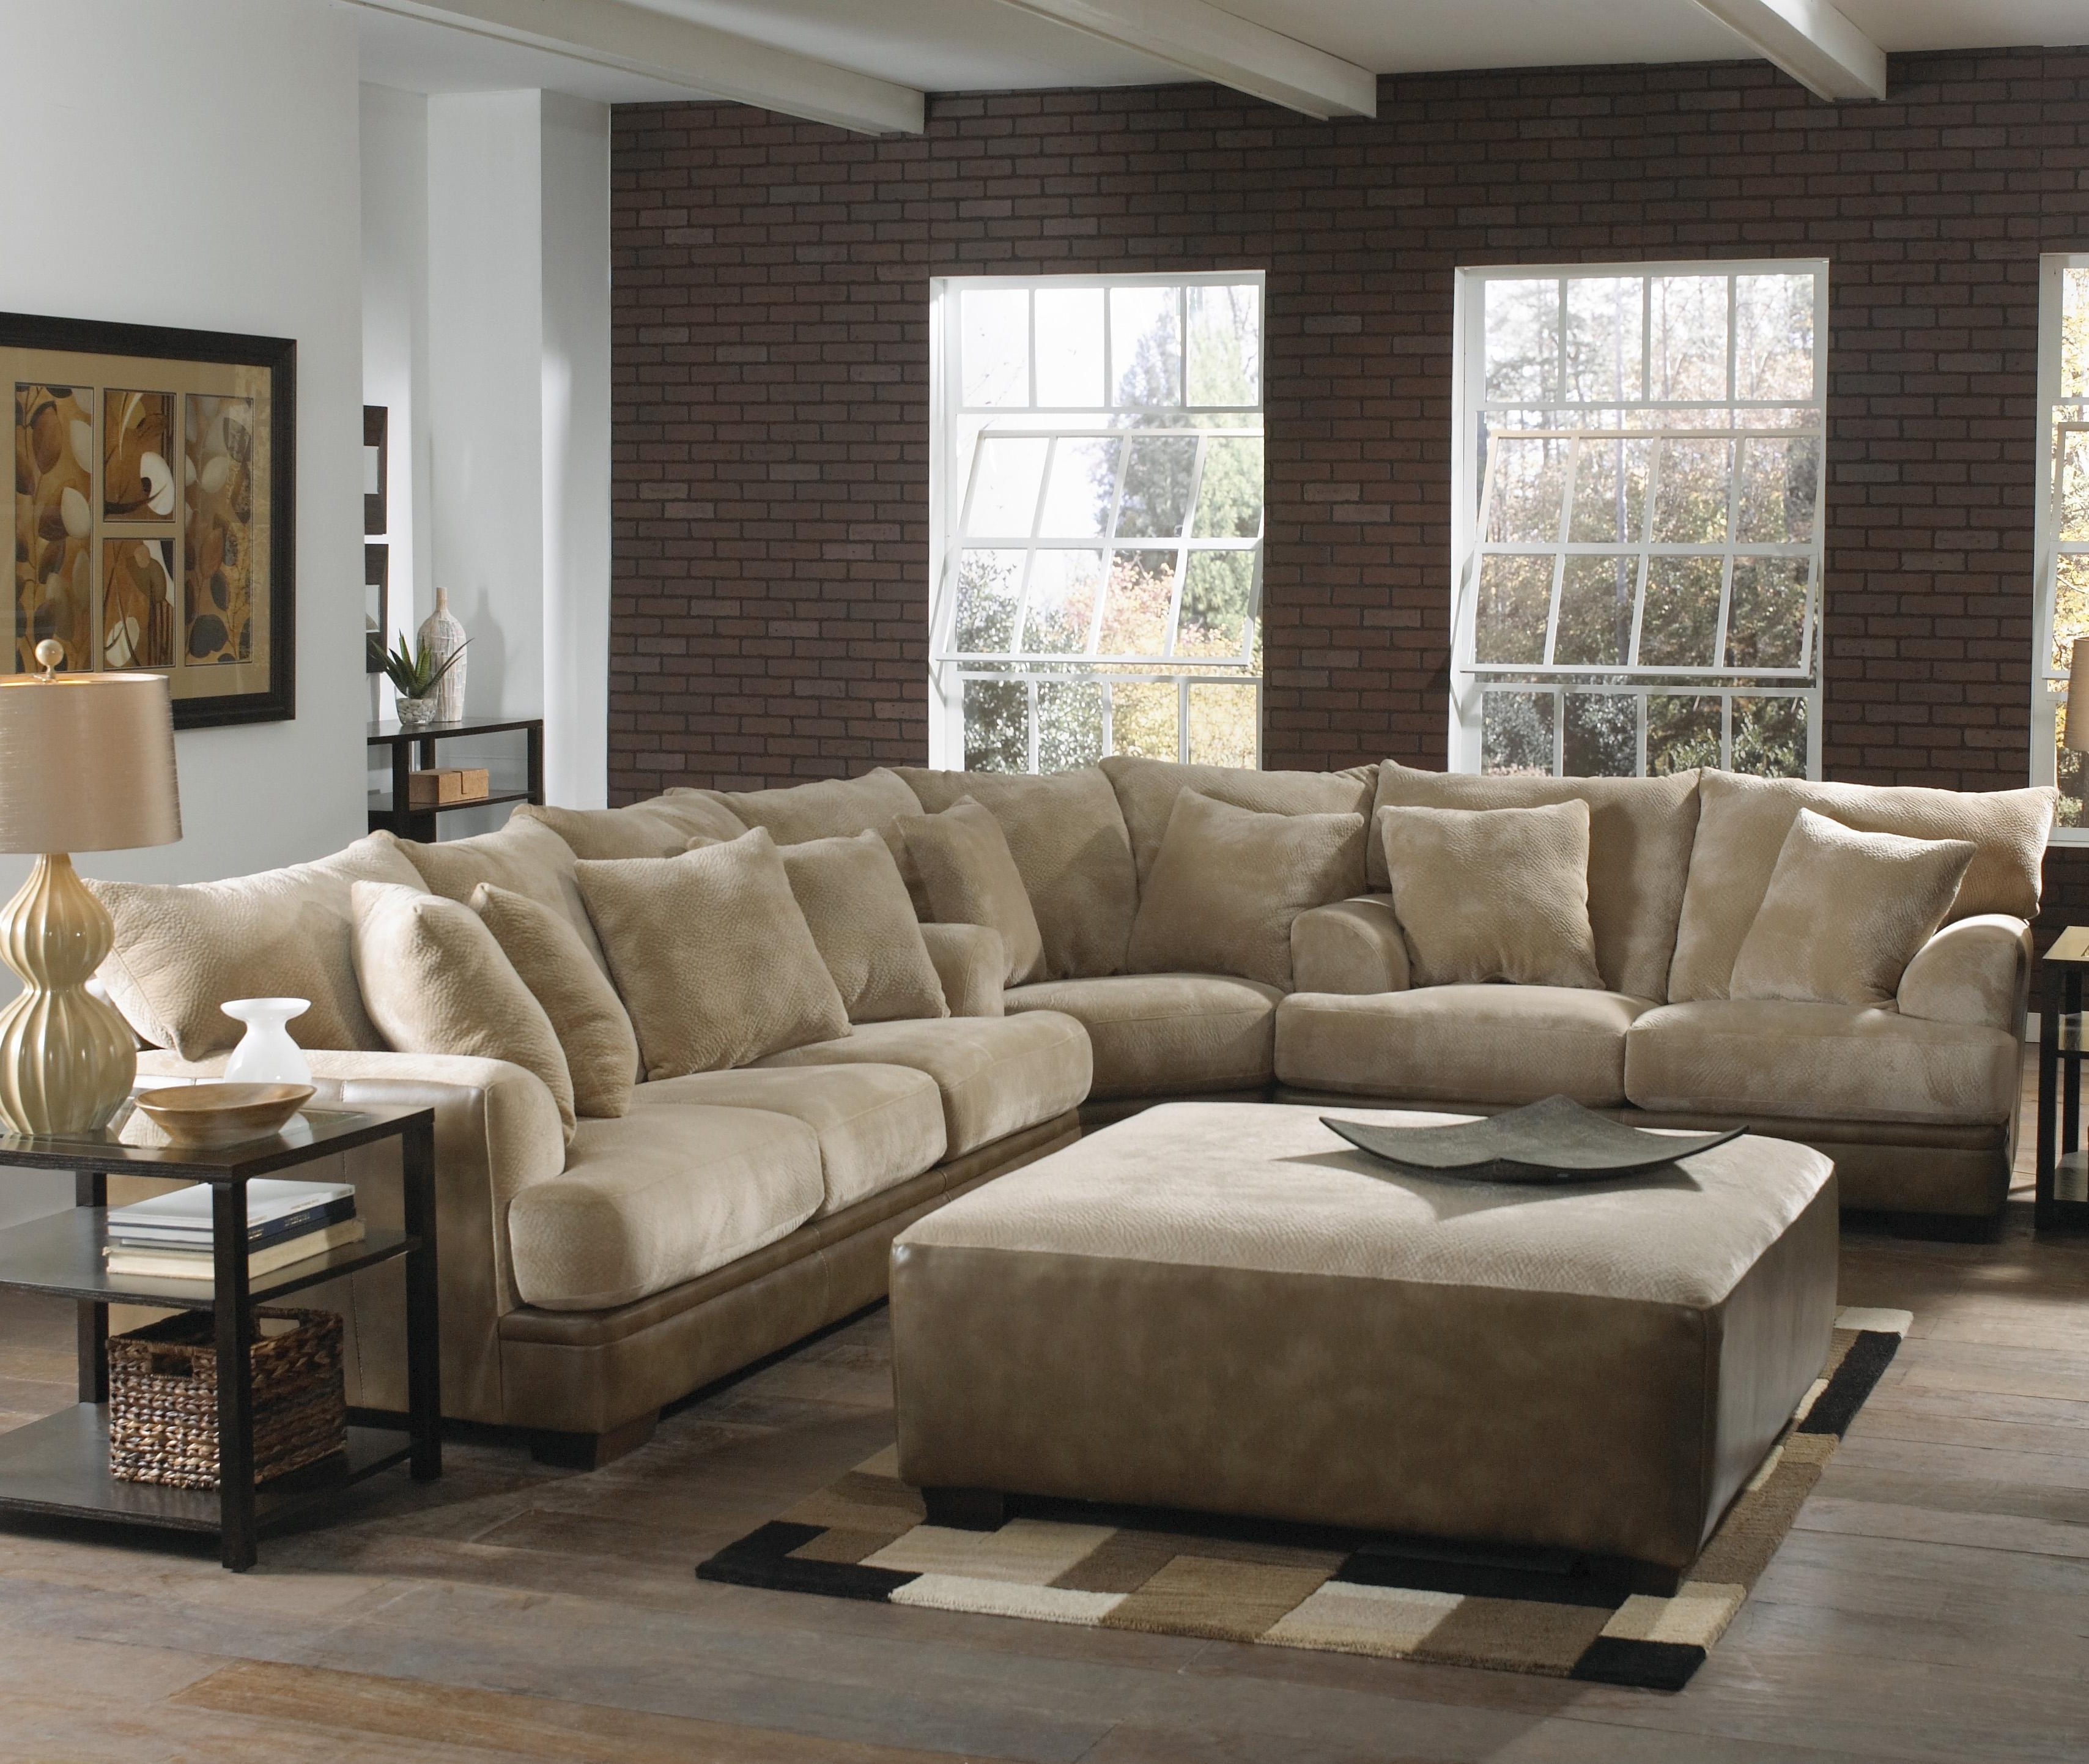 Huge Sofas For Recent Sofa Best Ideas Of Huge Sofas Oversized Sectional Sleeper Cheap (View 7 of 15)